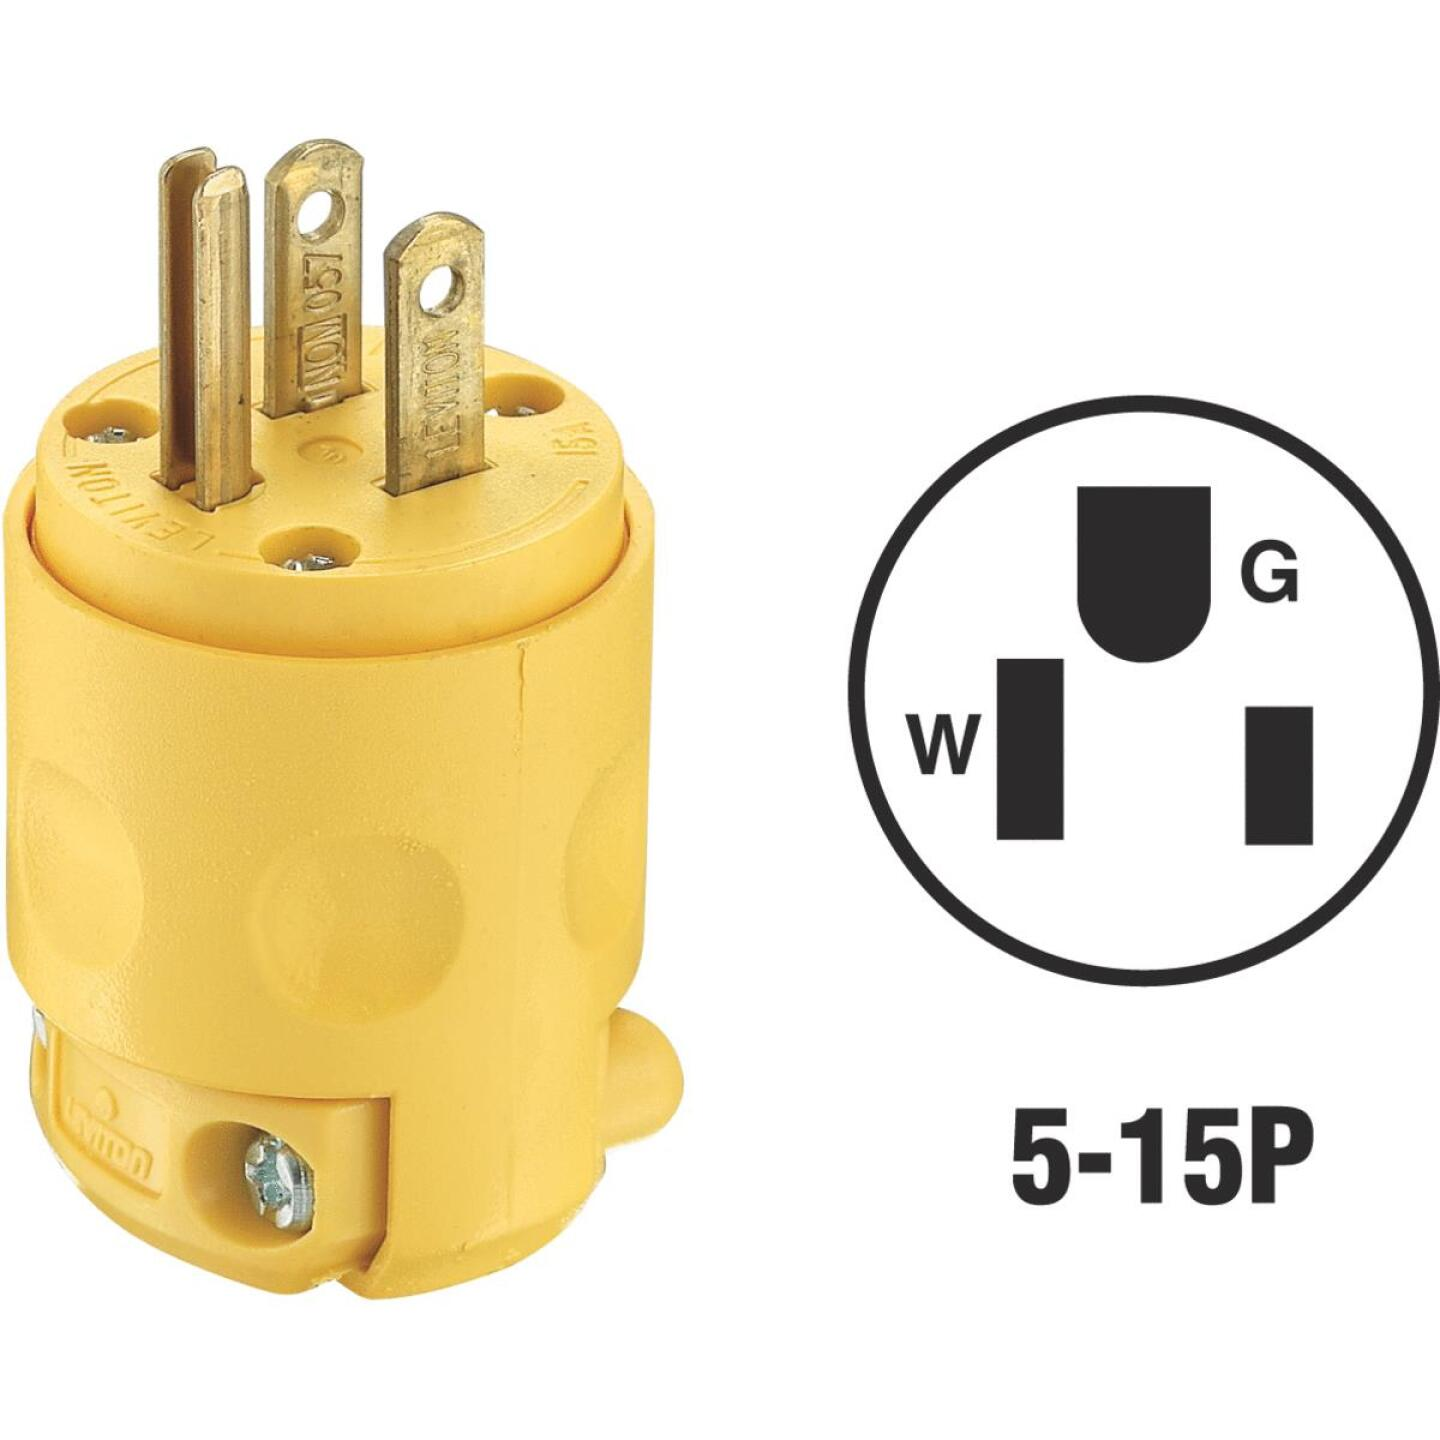 Do it 15A 125V 3-Wire 2-Pole Residential Grade Cord Plug Image 1